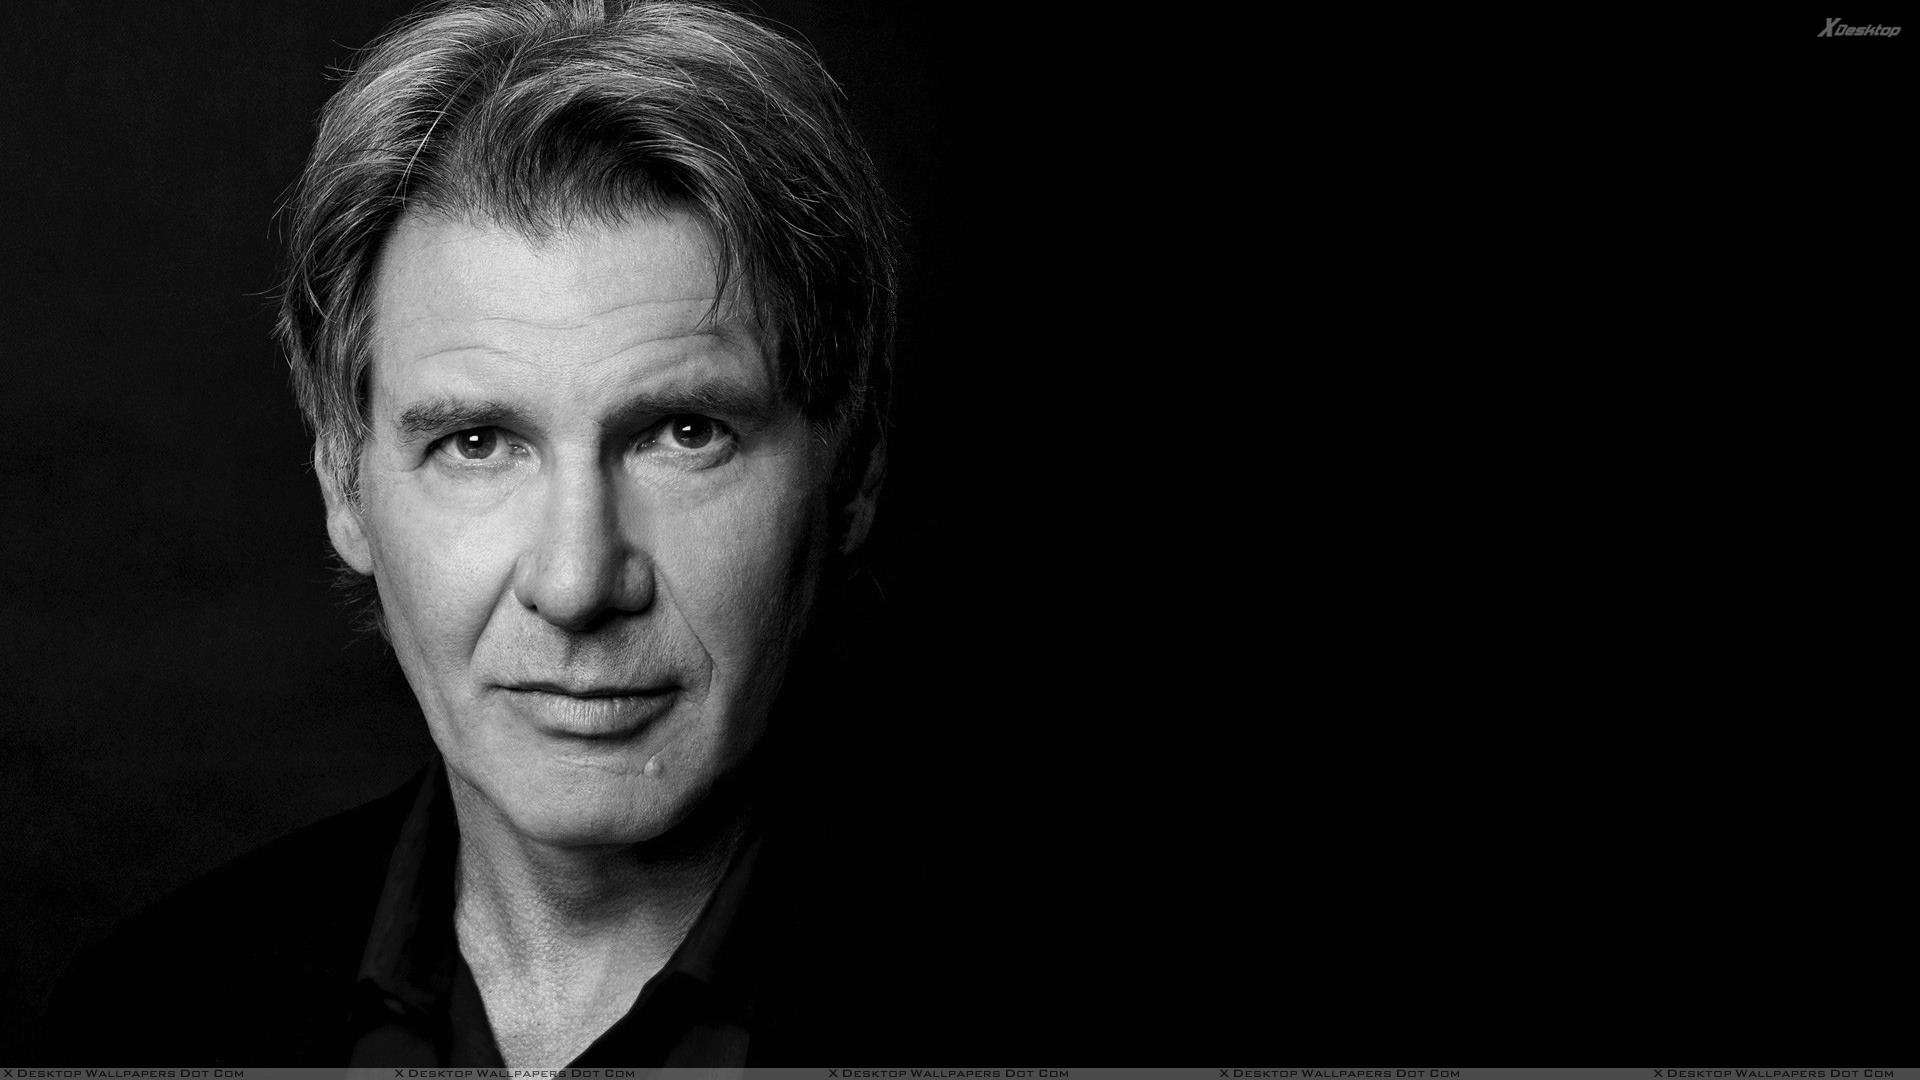 You are viewing wallpaper titled harrison ford looking front black n white face